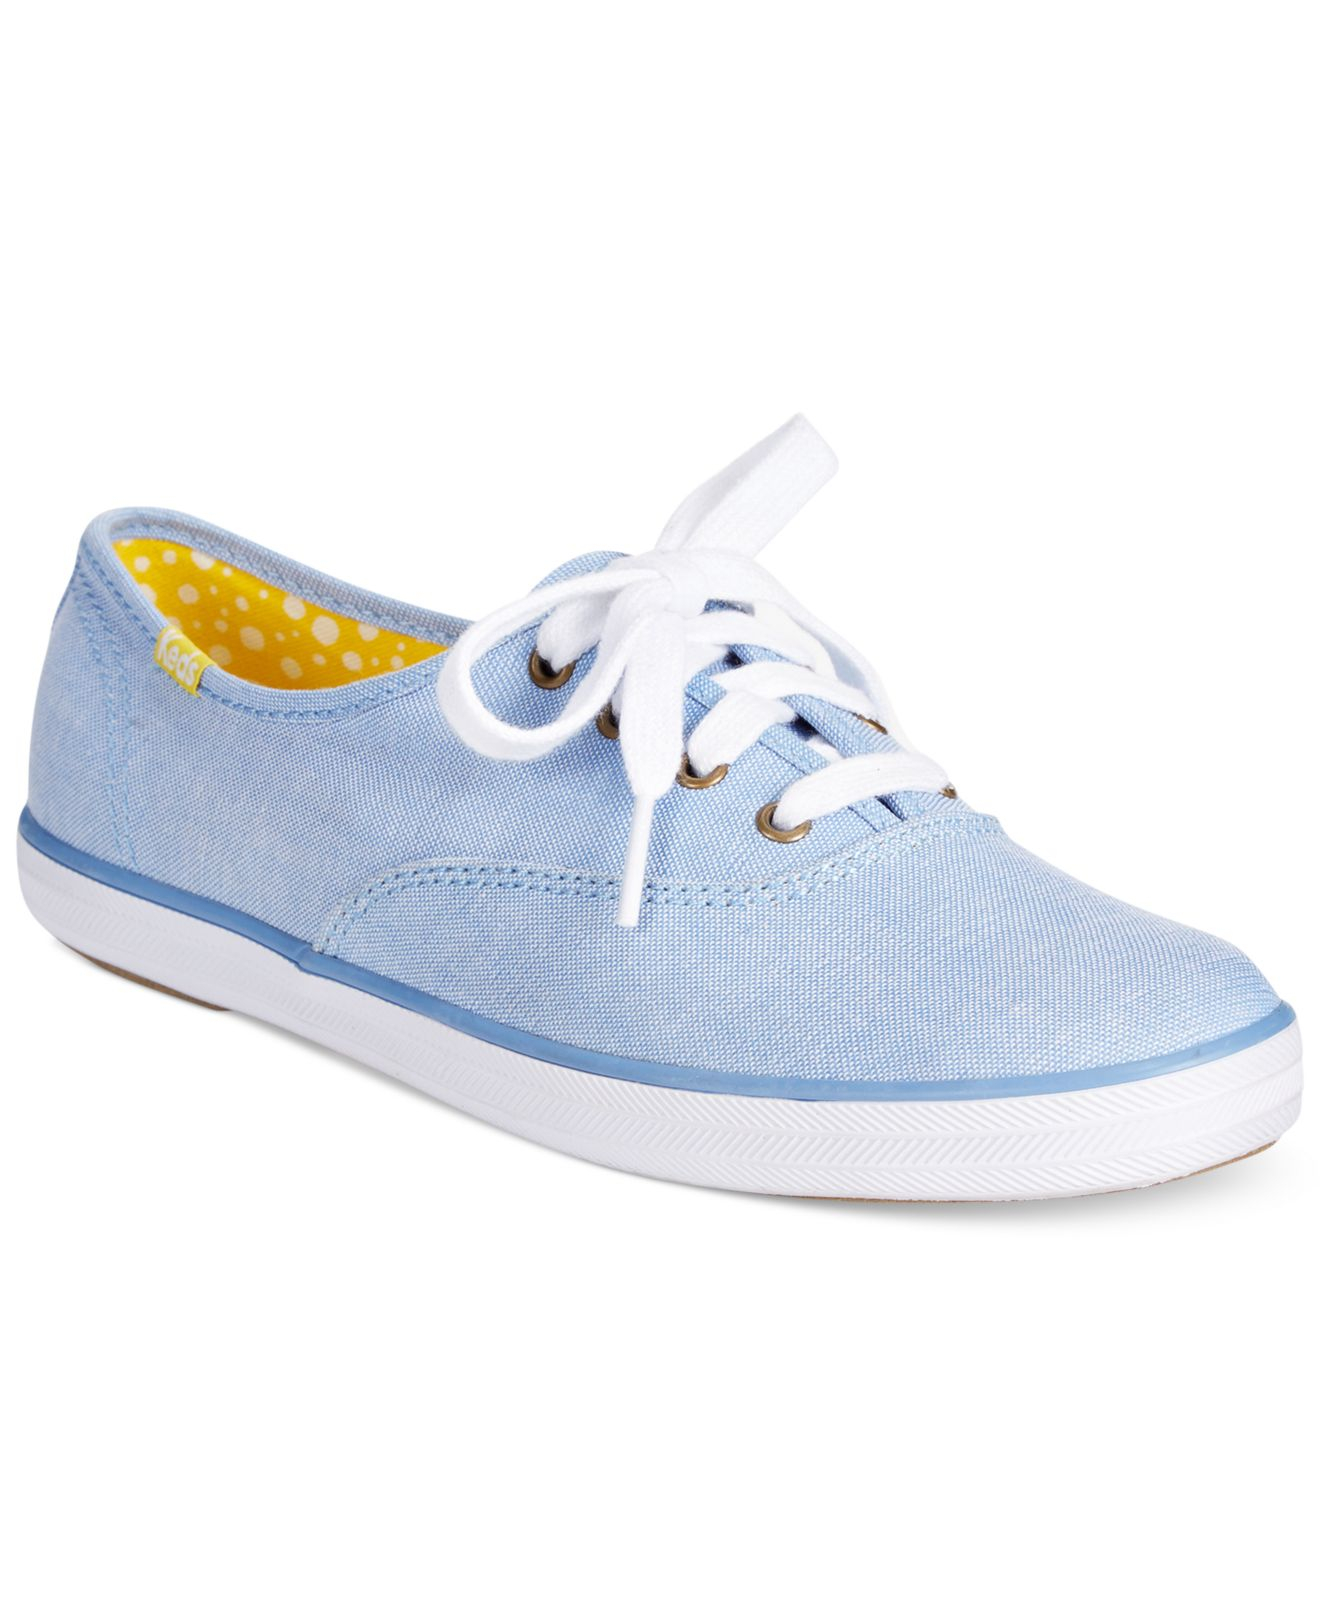 Keds Women's Spring Champion Oxford Sneakers in Blue